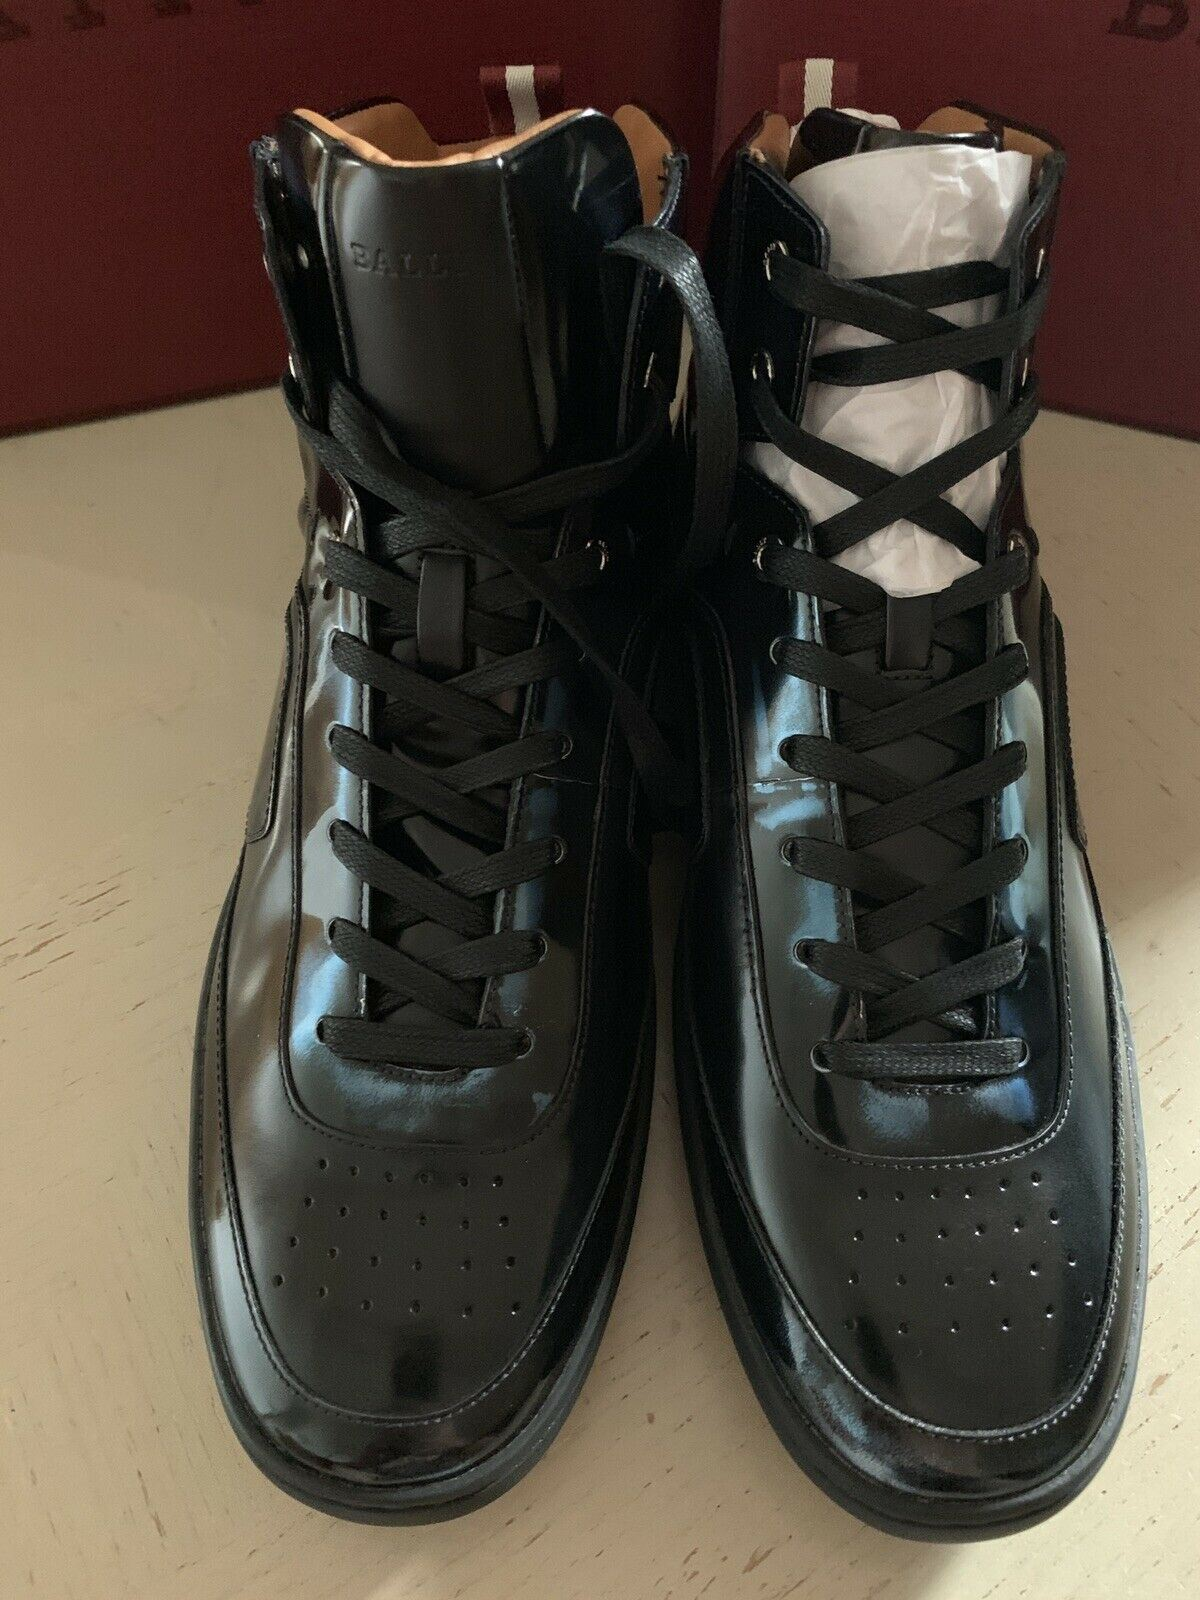 New $700 Bally Men Etra High-Top Sneakers Shoes Ink 10 US Switzerland